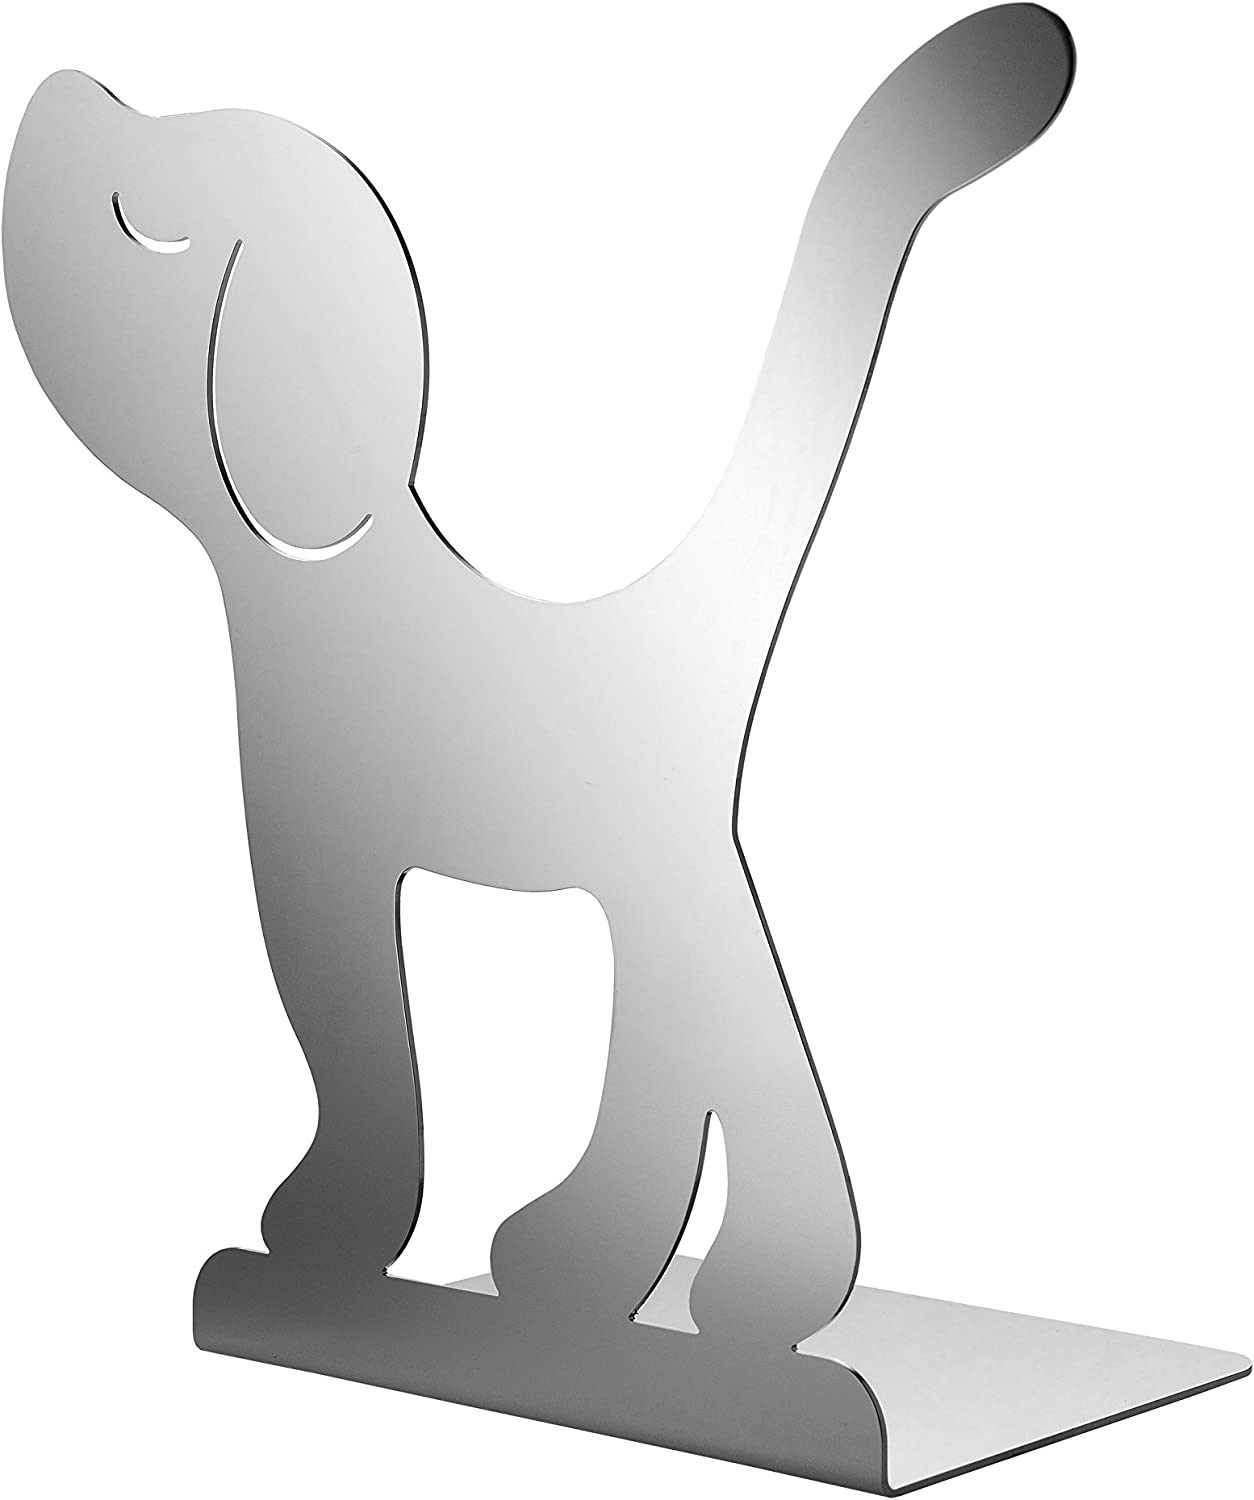 Alessi Aleesi AMMI30 1 Montparnasse All stores are sold Bookstand Max 79% OFF Silver